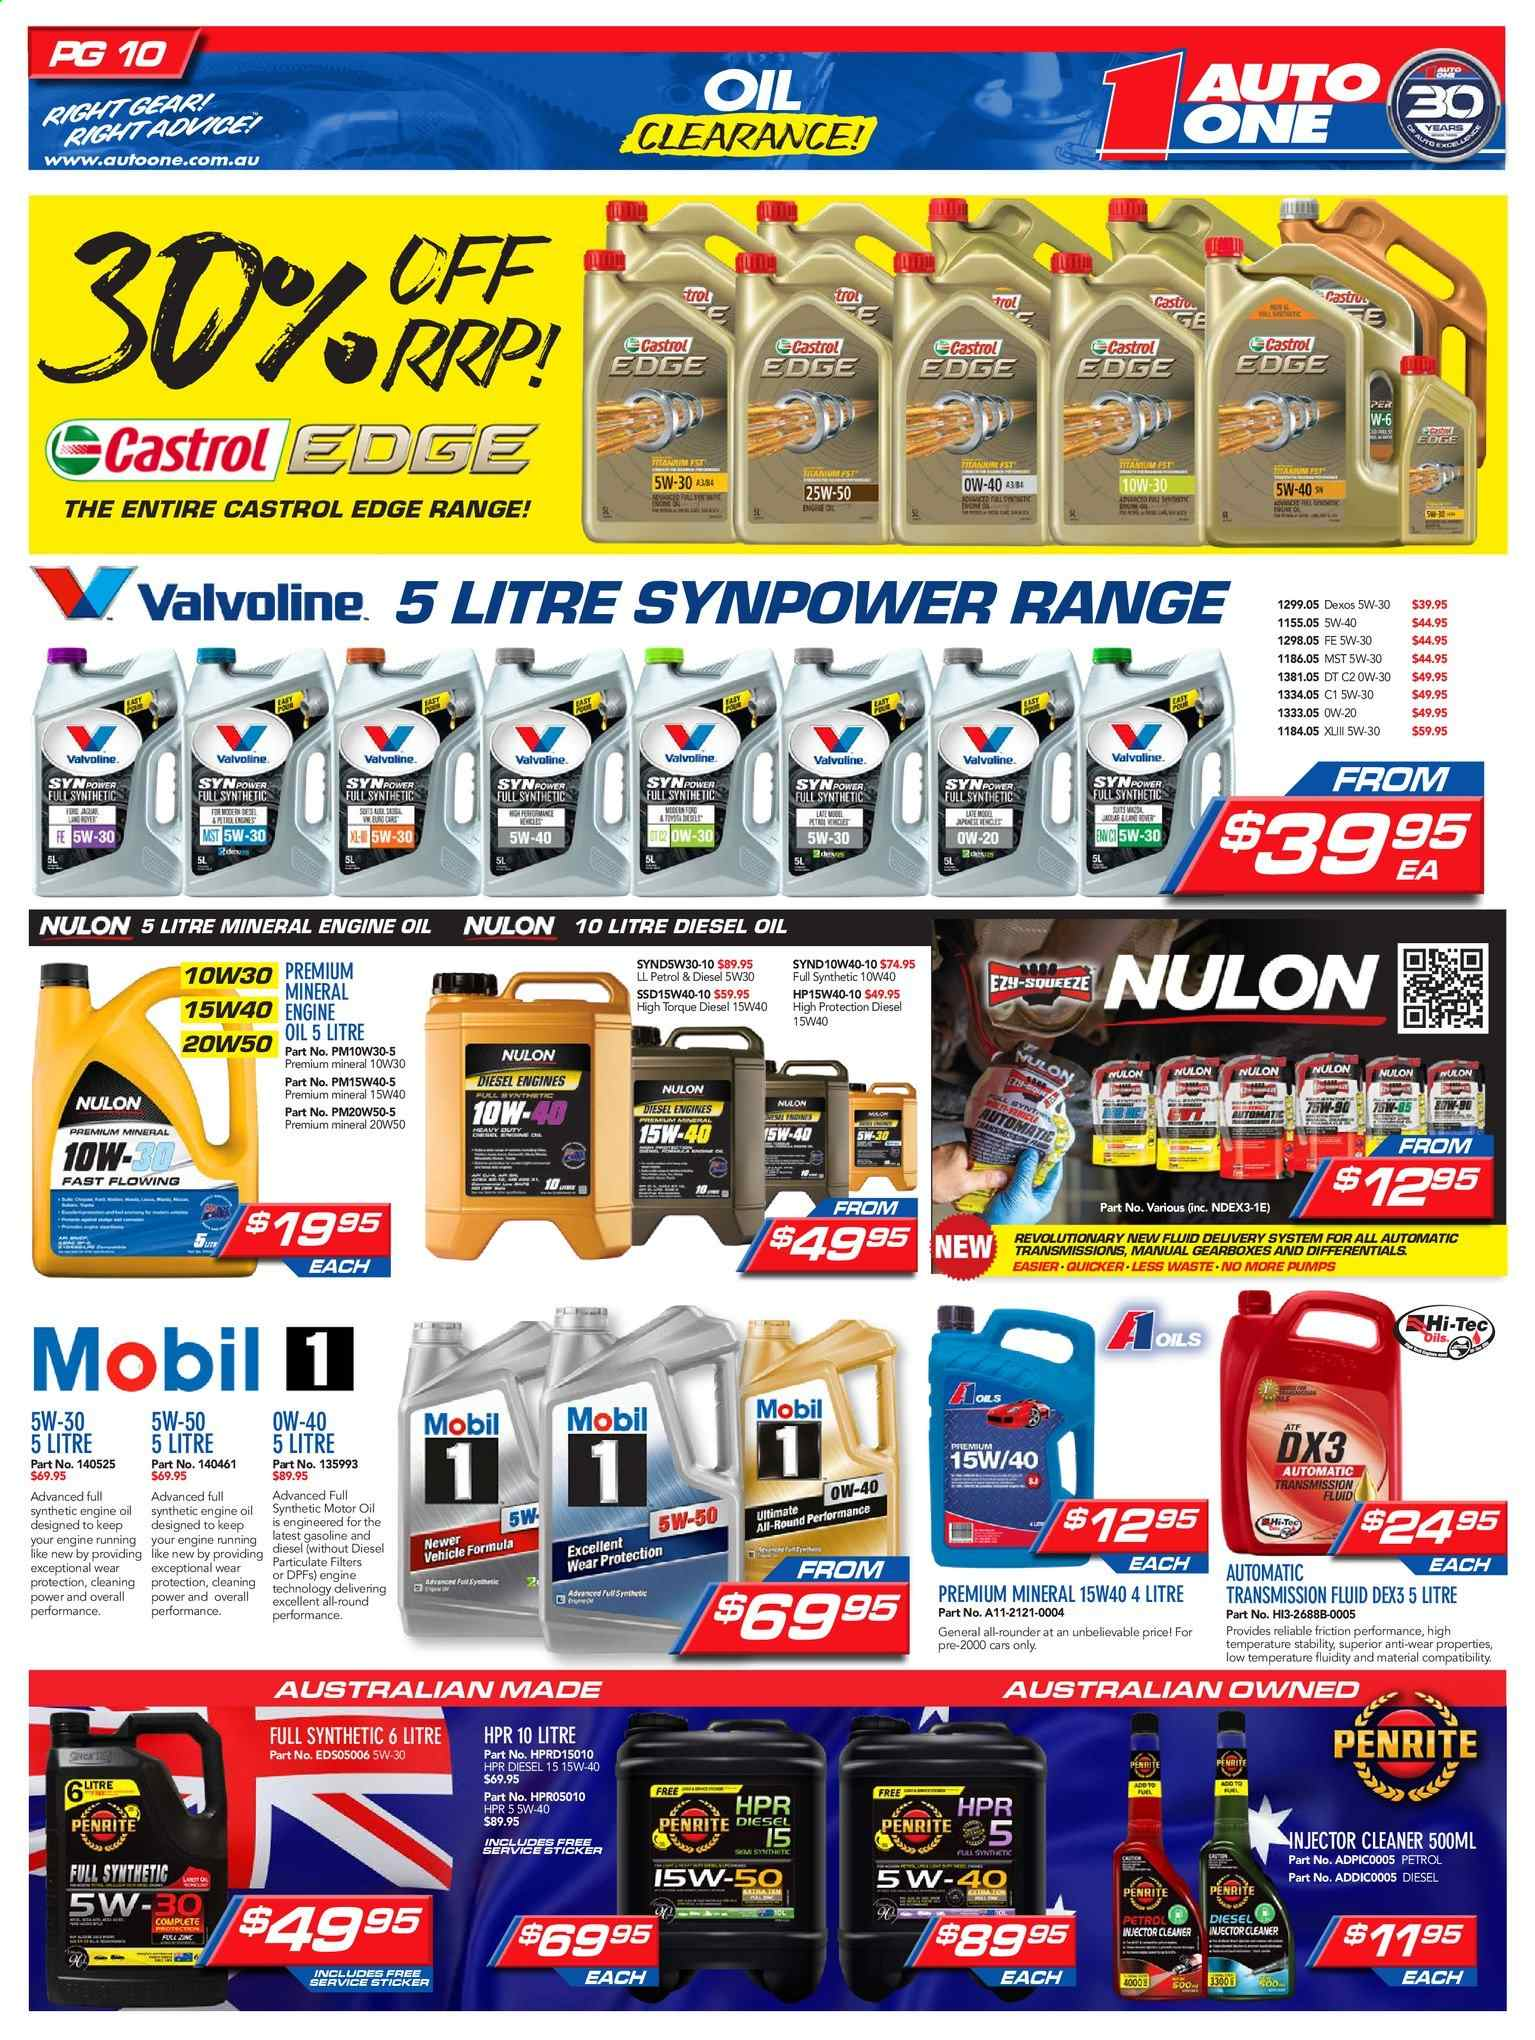 Auto One catalogue and weekly specials 12 6 2019 - 30 6 2019 | Au